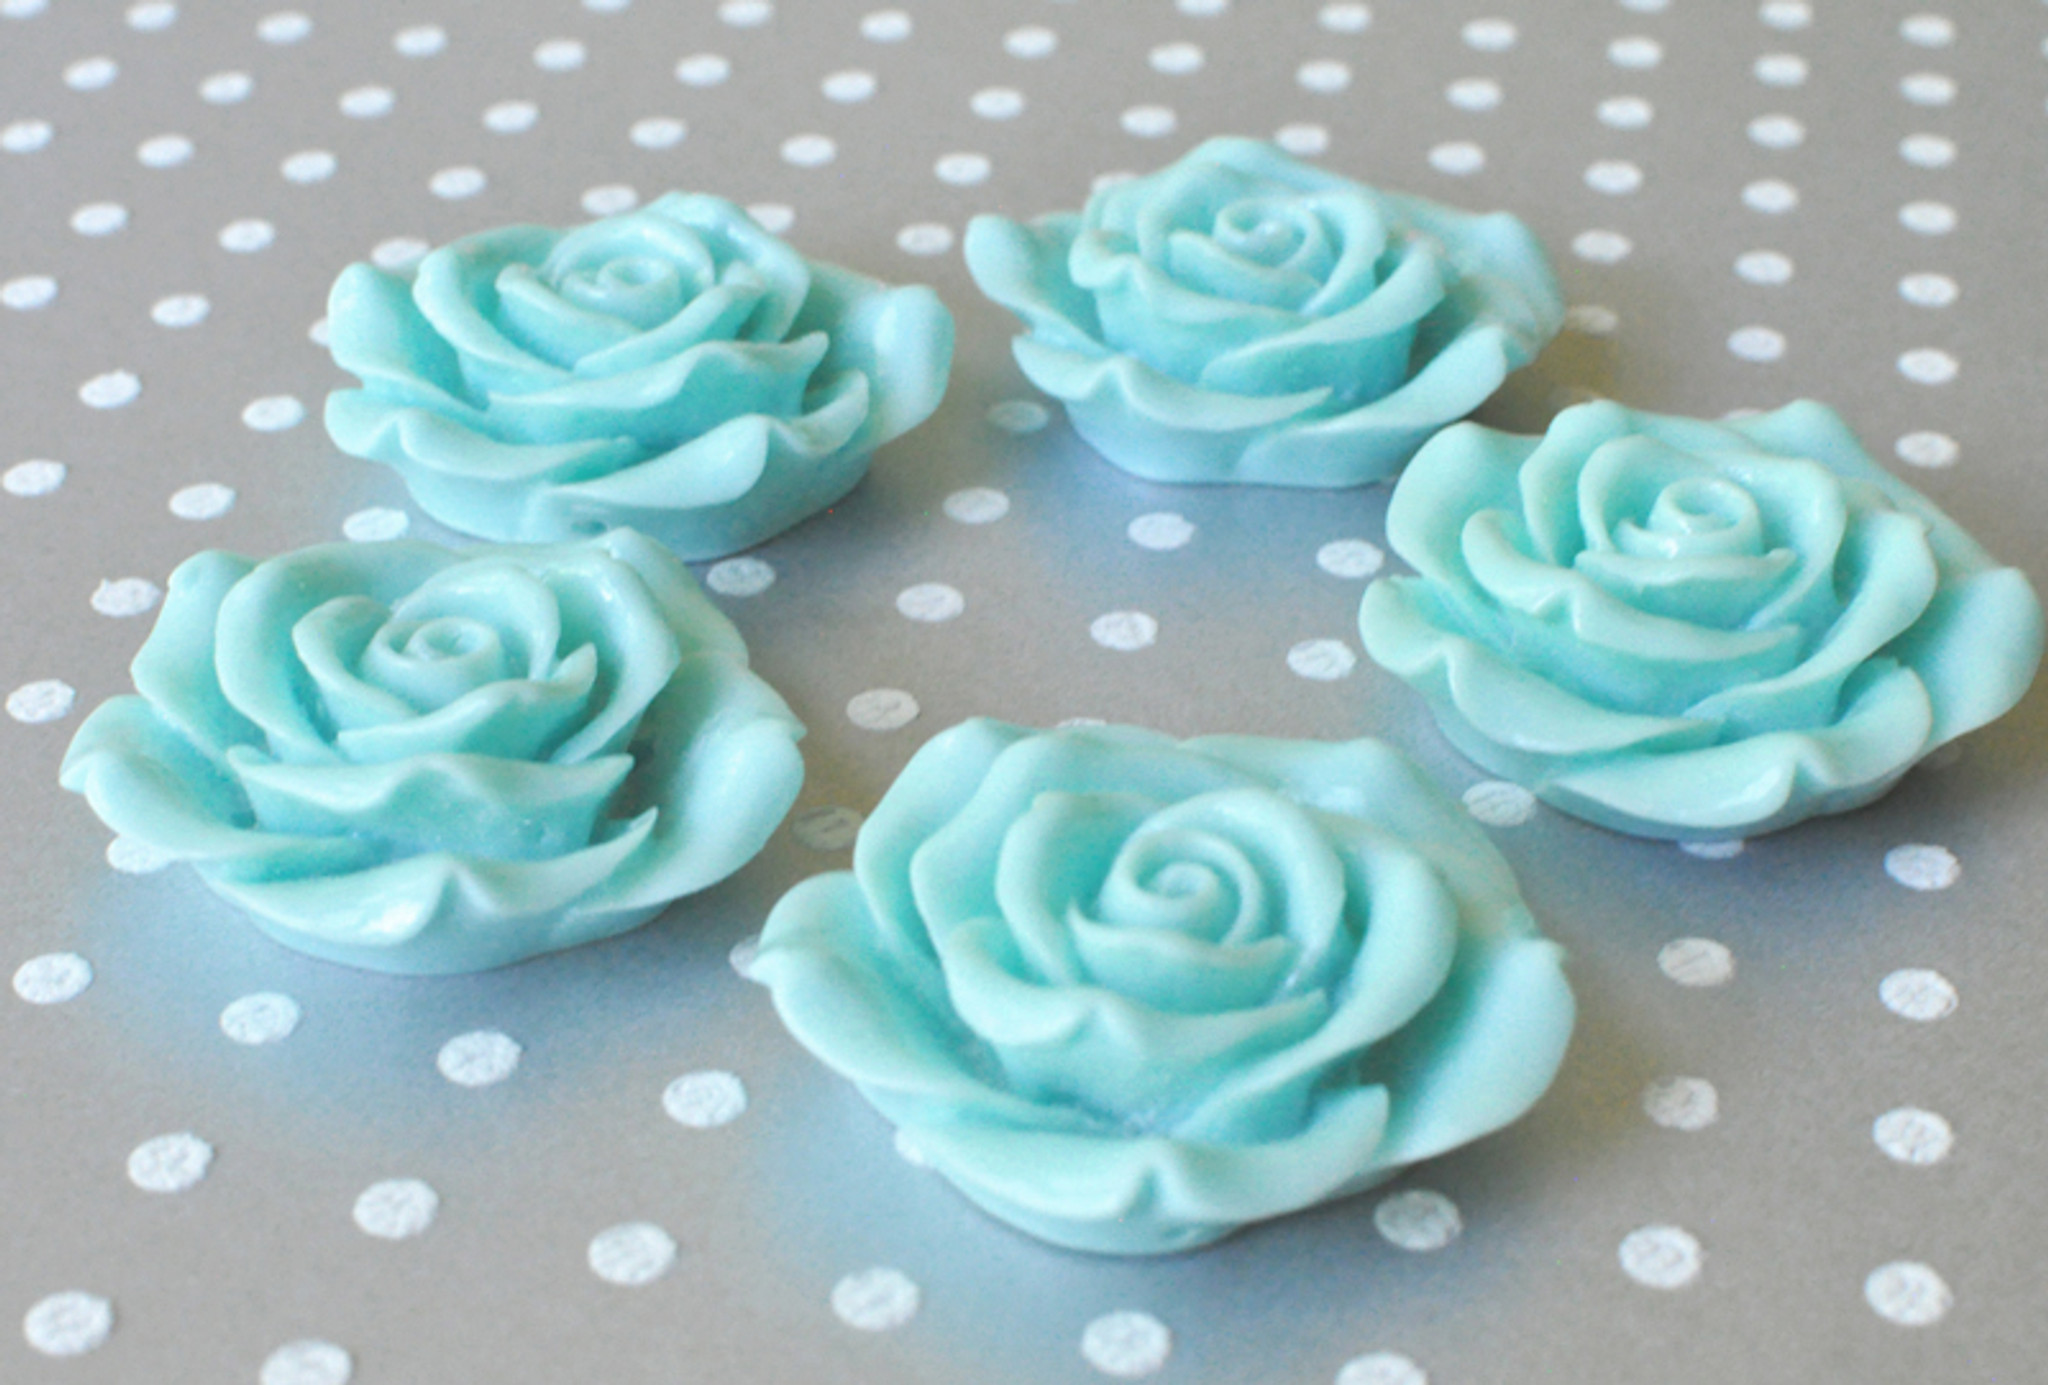 42mm Aqua resin flower beads for chunky necklaces